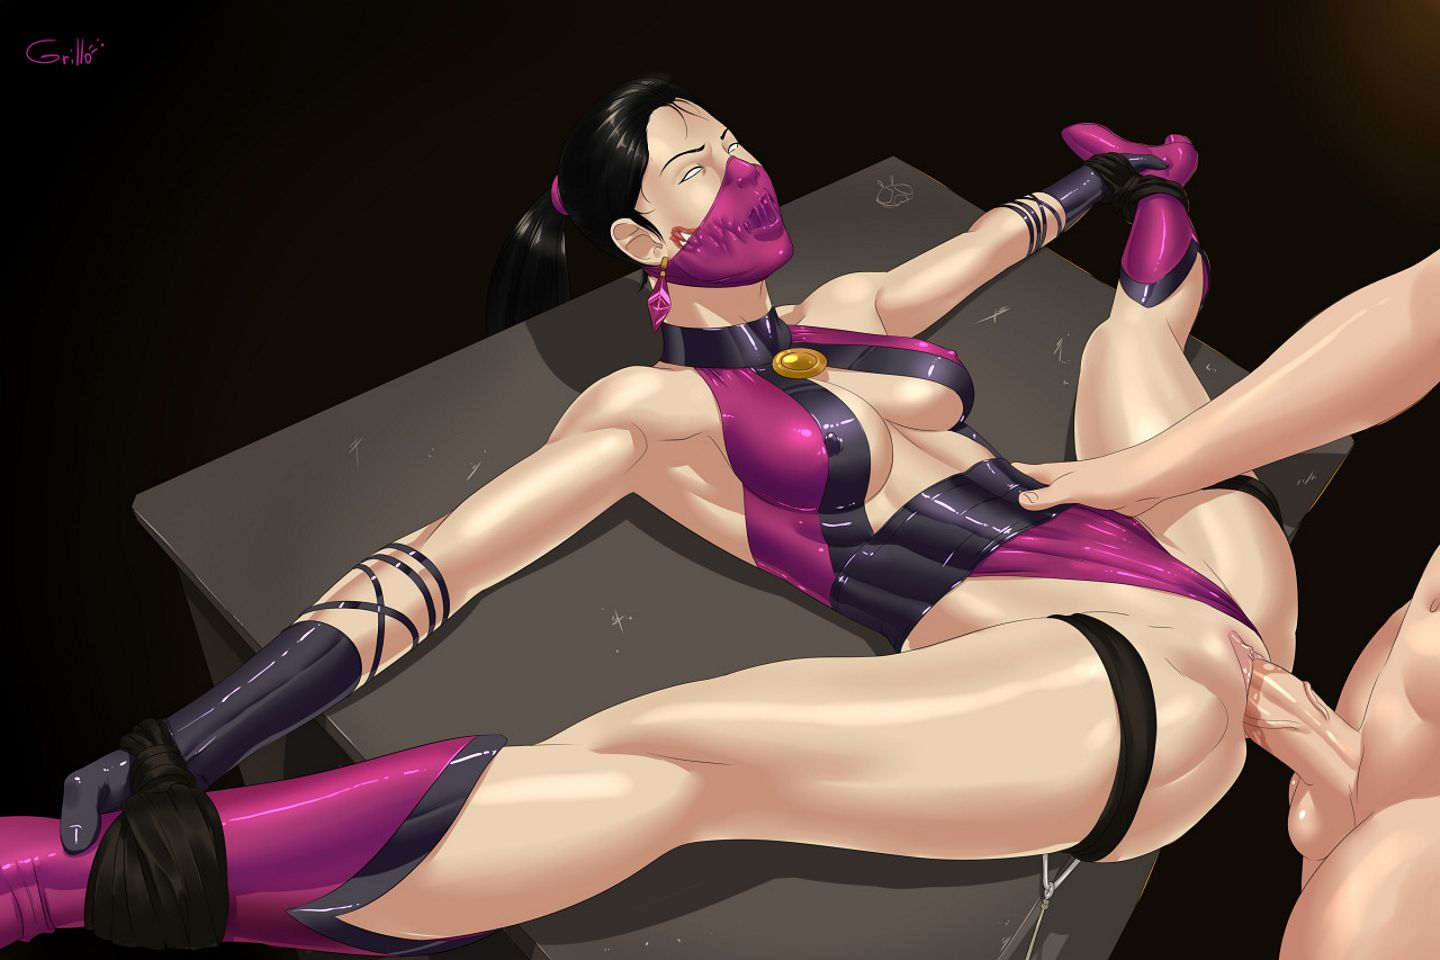 Mortal kombat girls bdsm fucking comic